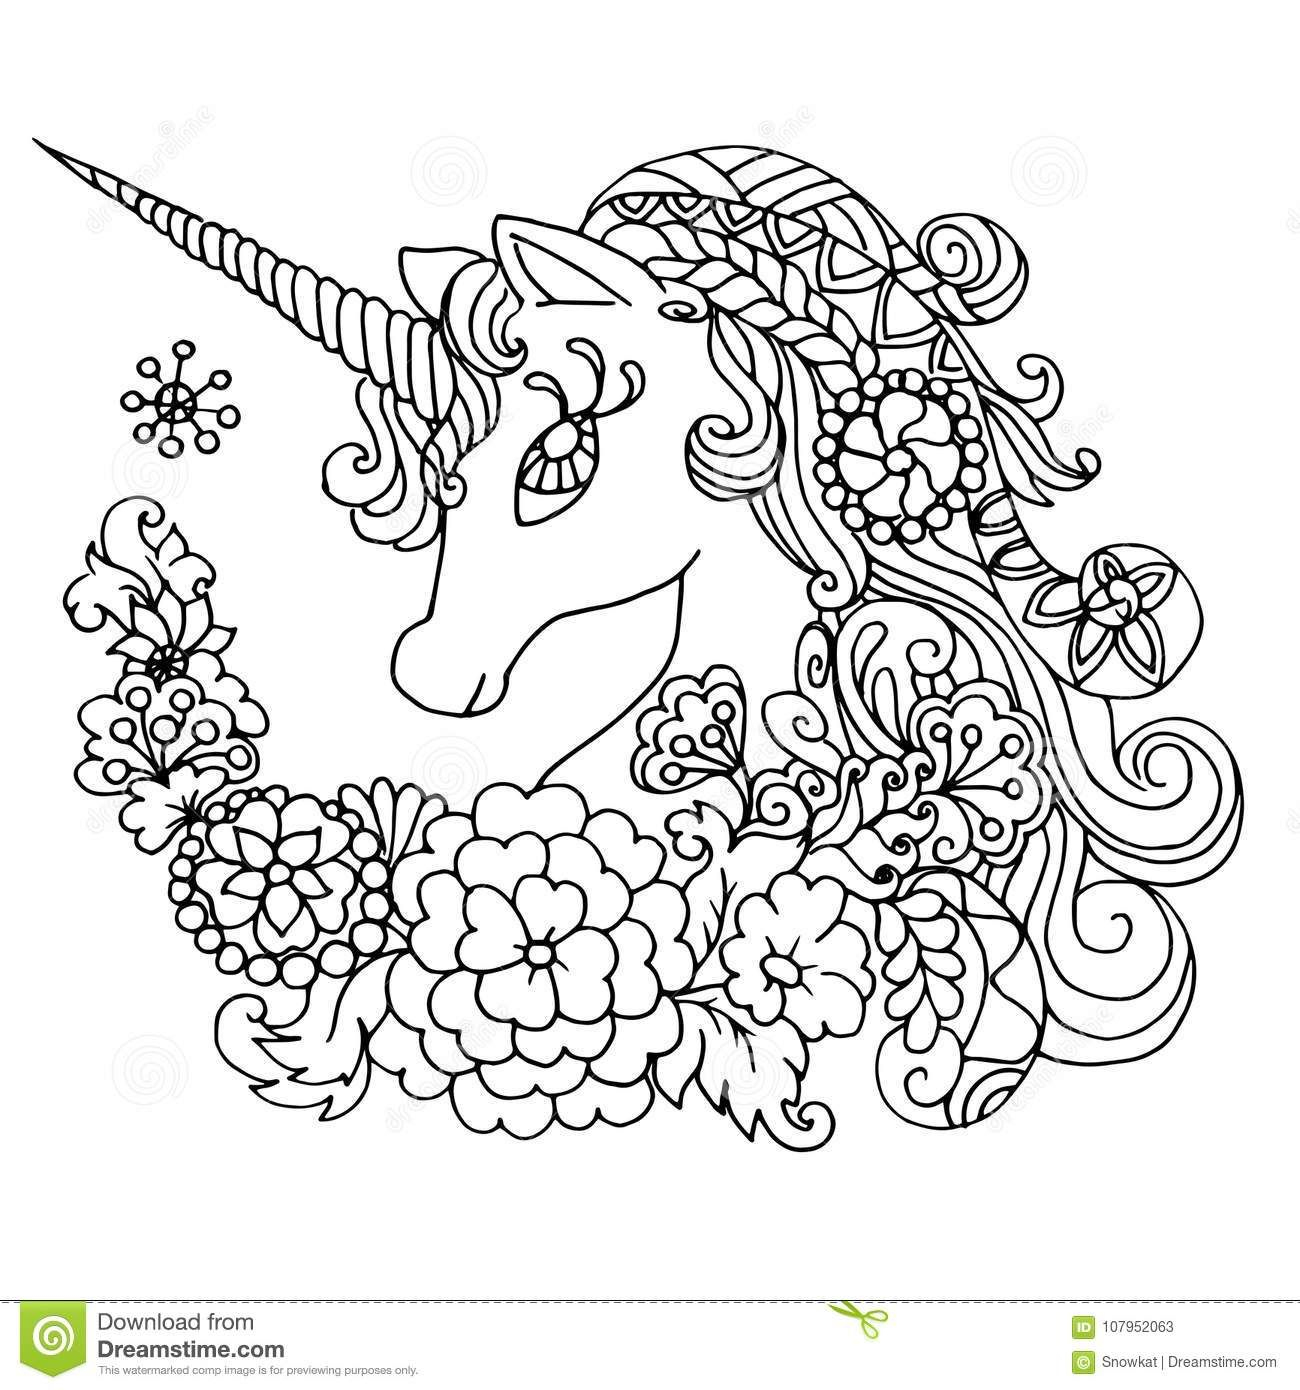 Pin By Godmother Marija On 2019 Uskrs | Unicorn Coloring Pages concernant Dessin A Imprimer Licorne